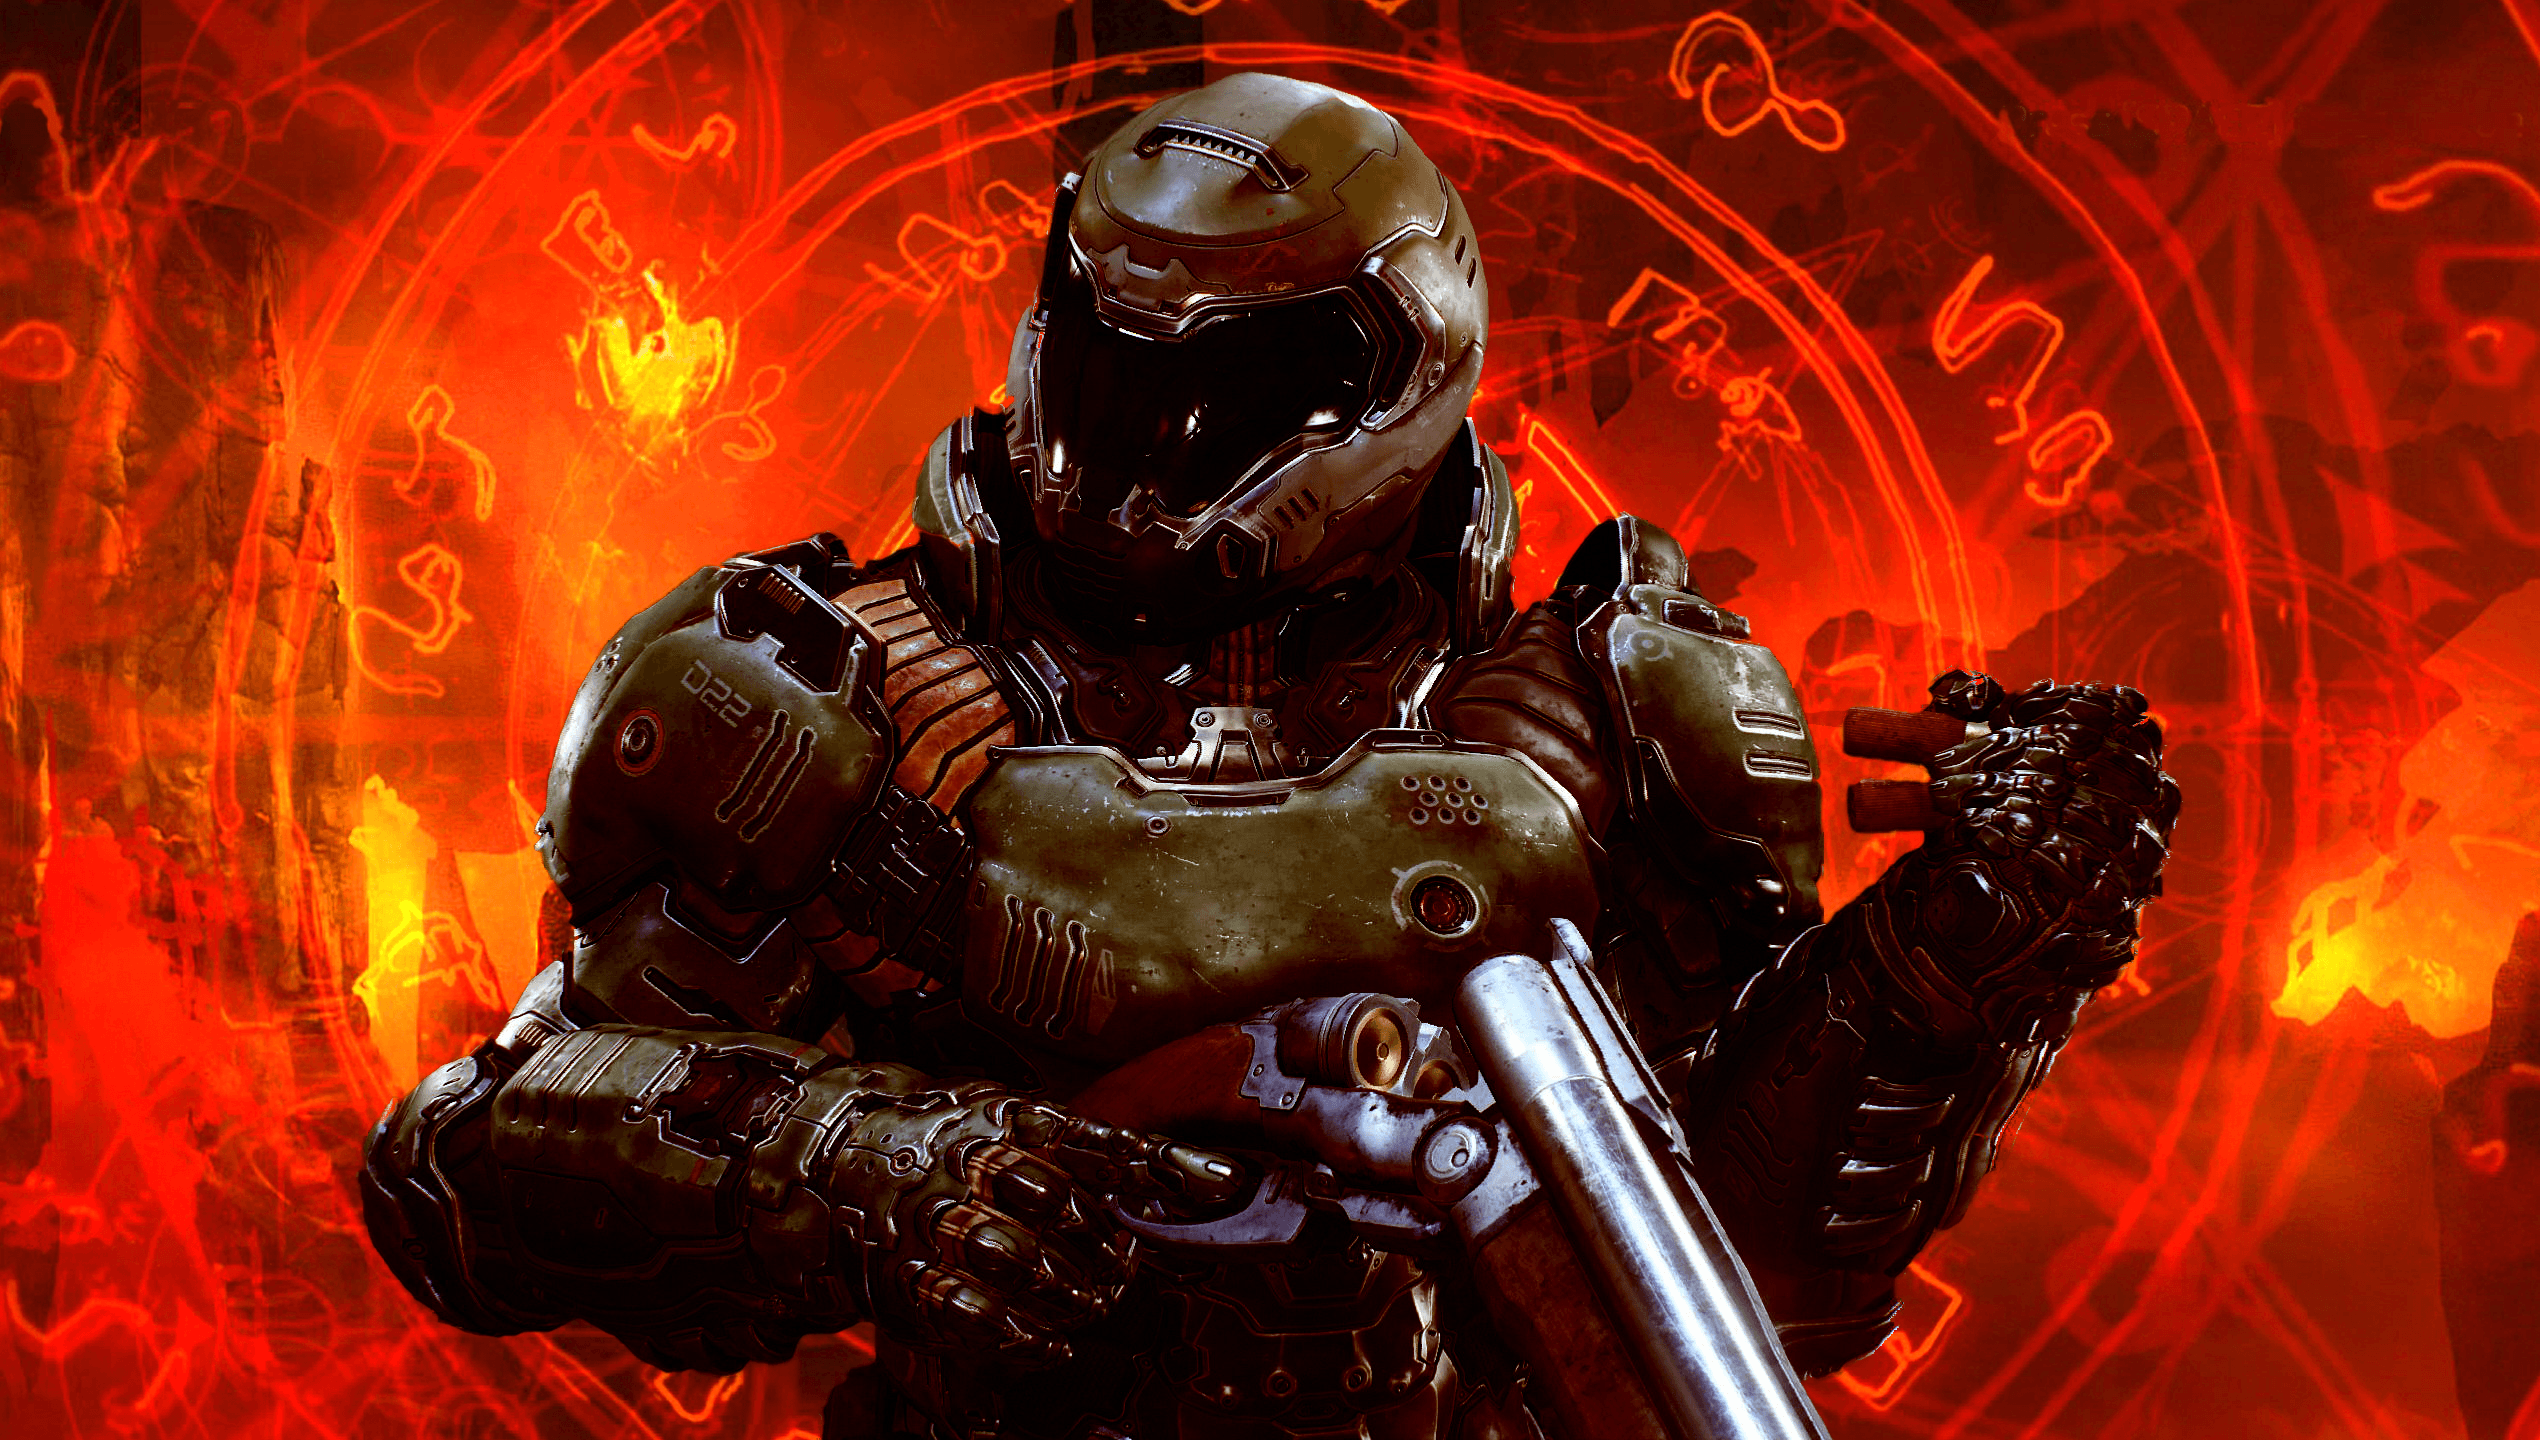 2540x1440 Made this new Desktop Background using the new image of the Doom ...